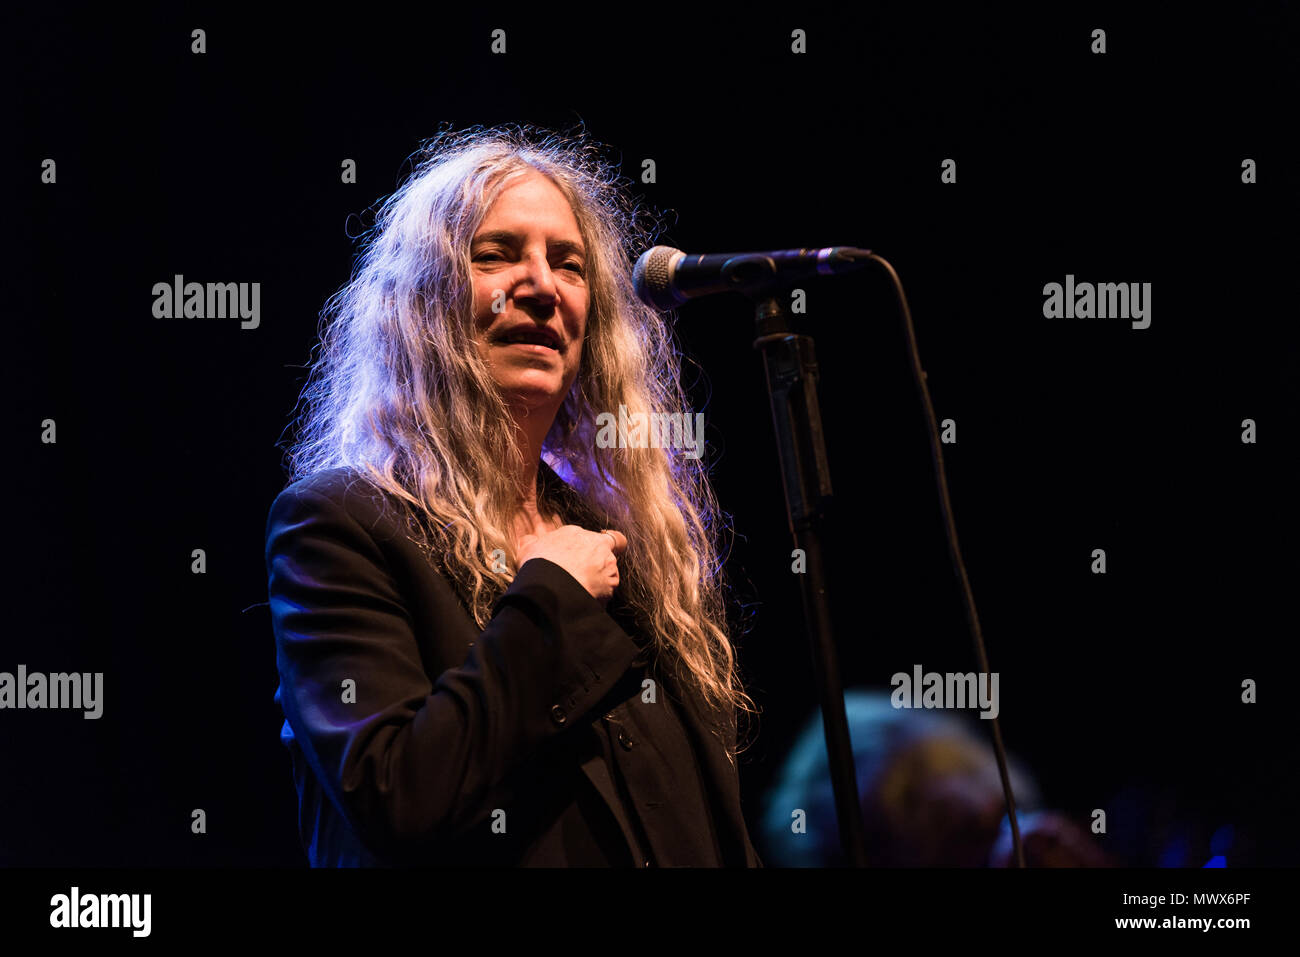 Brighton, East Sussex. 2nd June 2018. Iconic music legend Patti Smith and Her Band perform live at the Brighton Dome. Credit: Francesca Moore/Alamy Live News - Stock Image